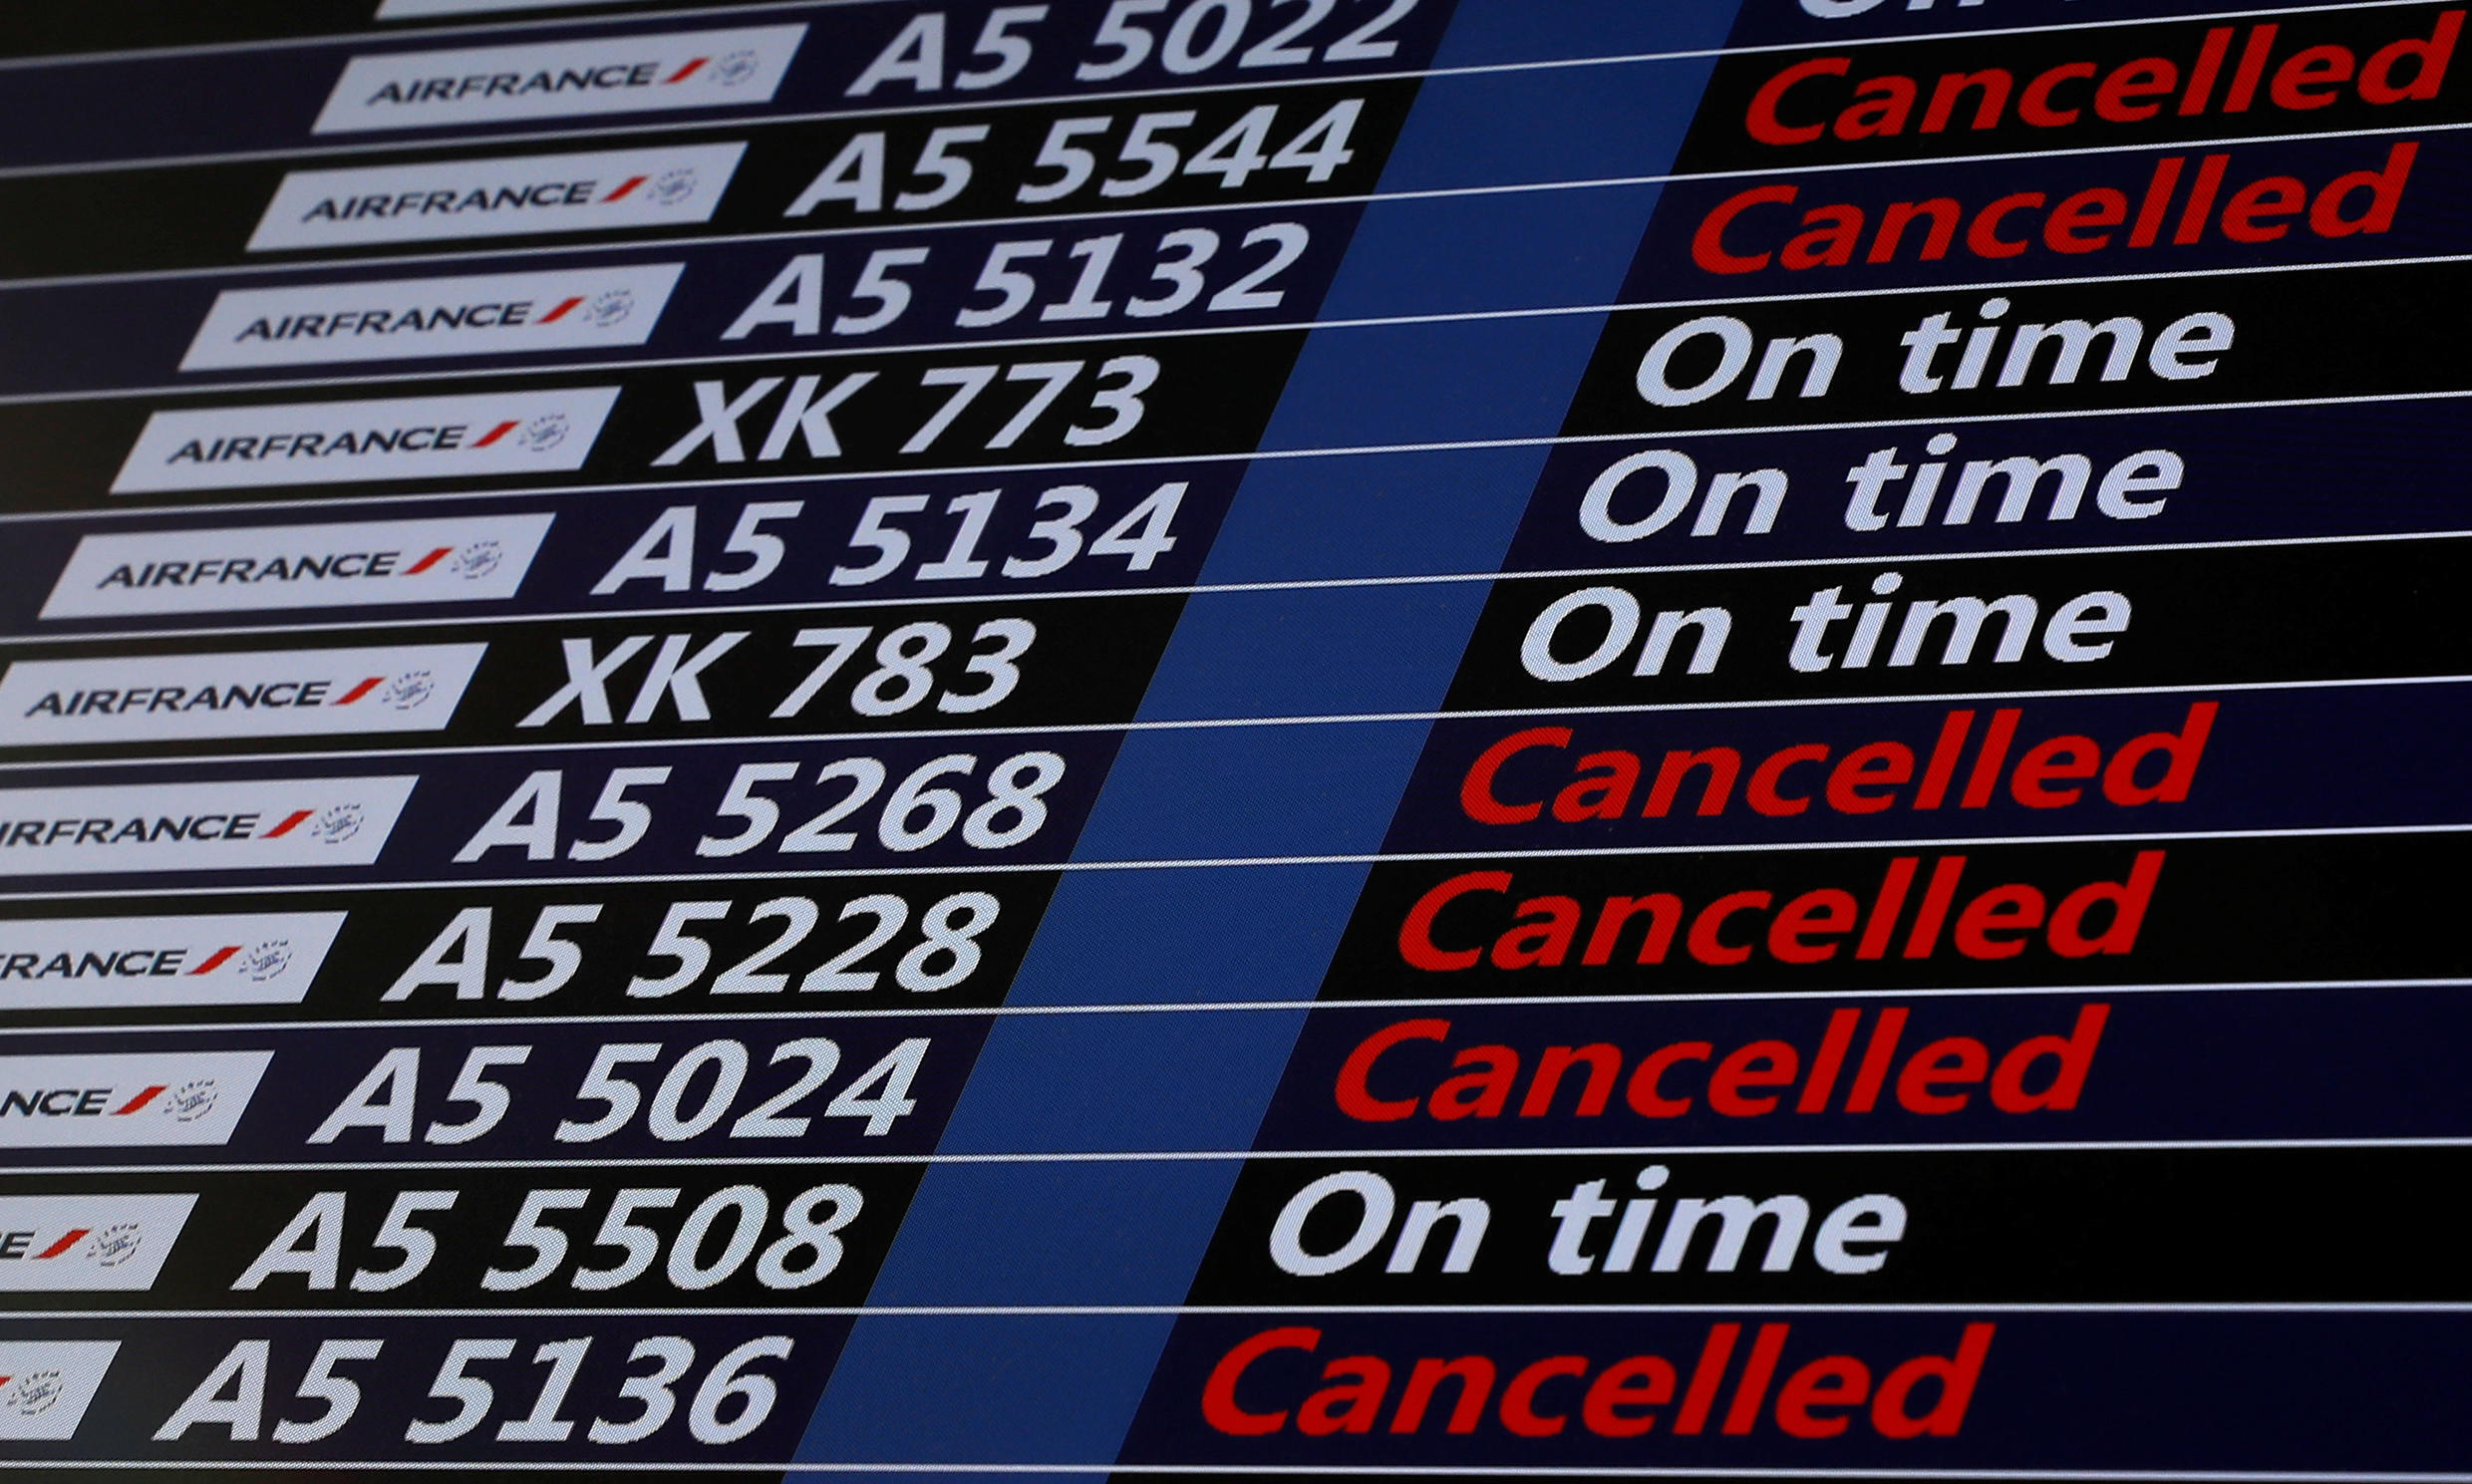 A flight departure screen at Orly airport during one of last month's strikes